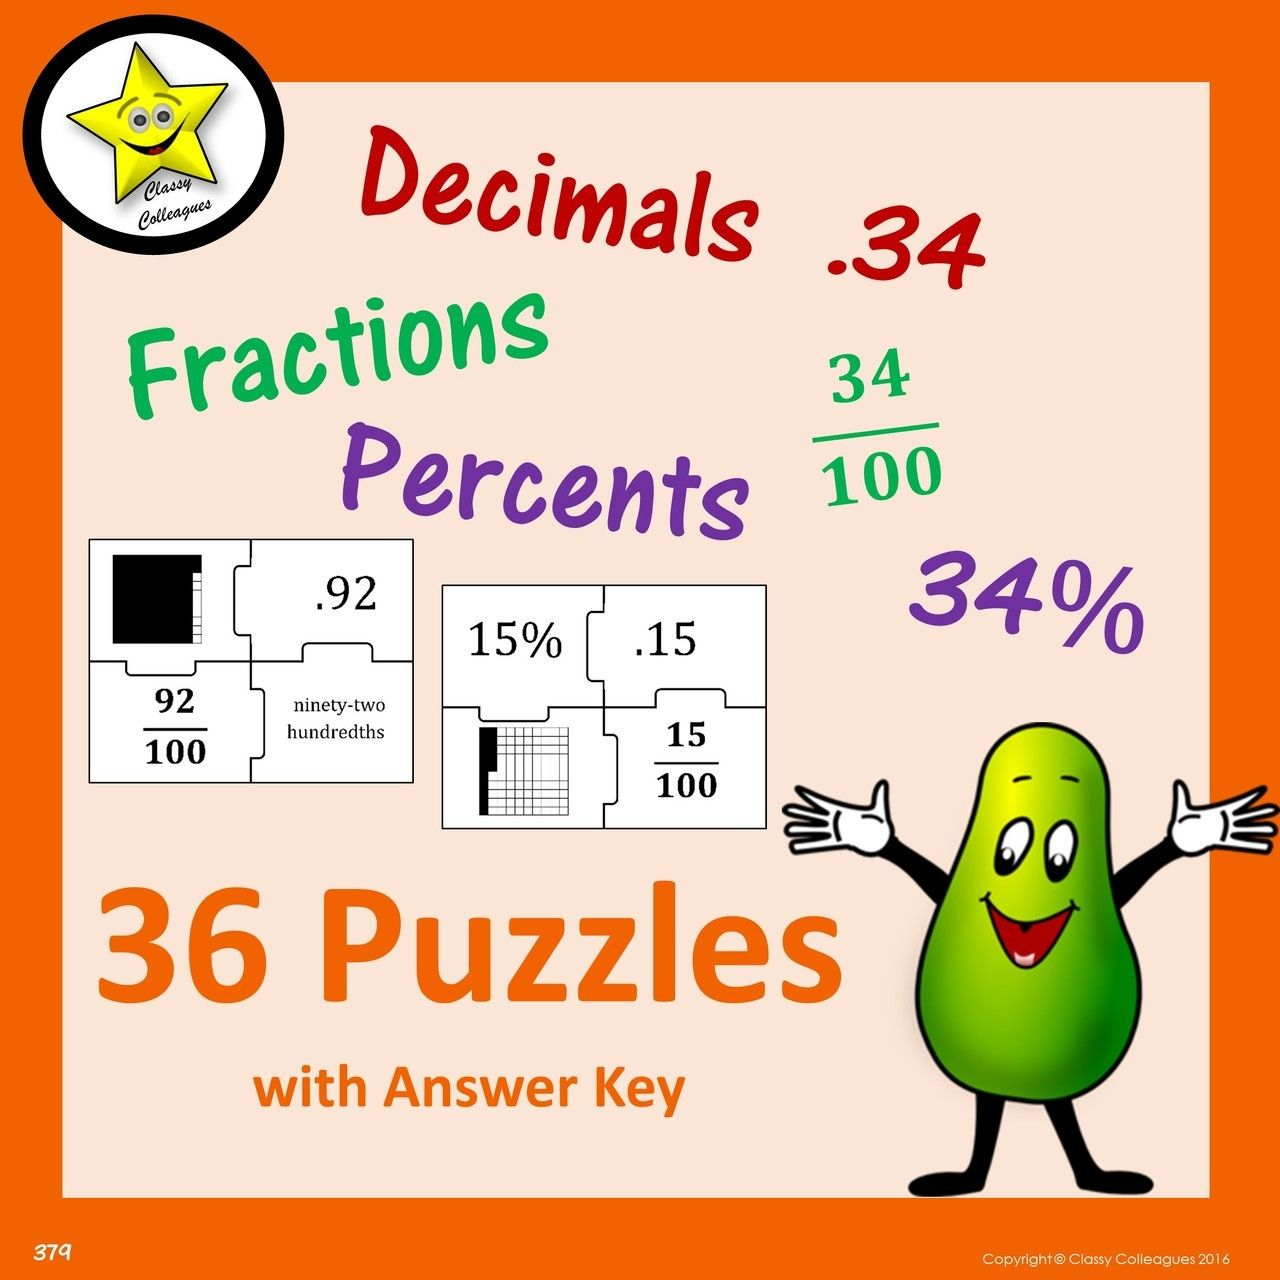 Decimal Fraction Percent Puzzles